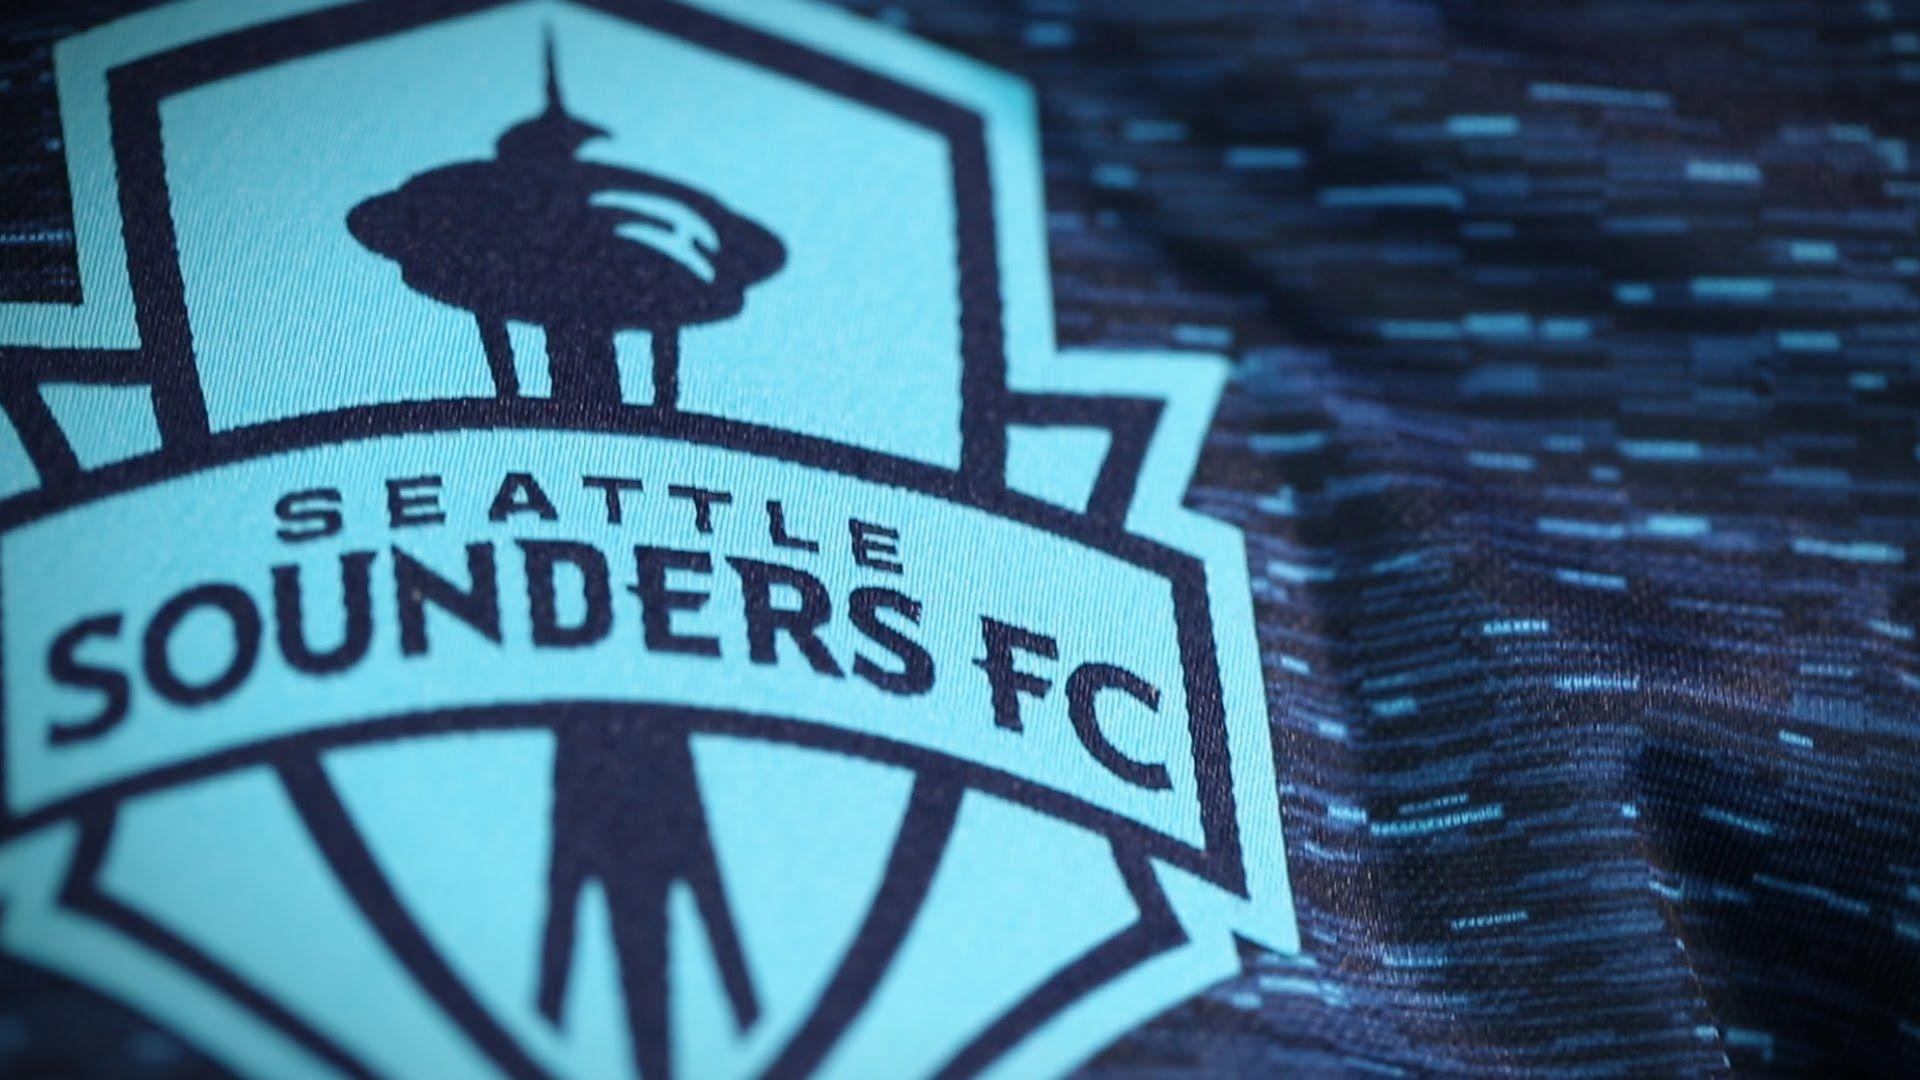 Seattle Sounders FC unveils two new kits for 2016 season